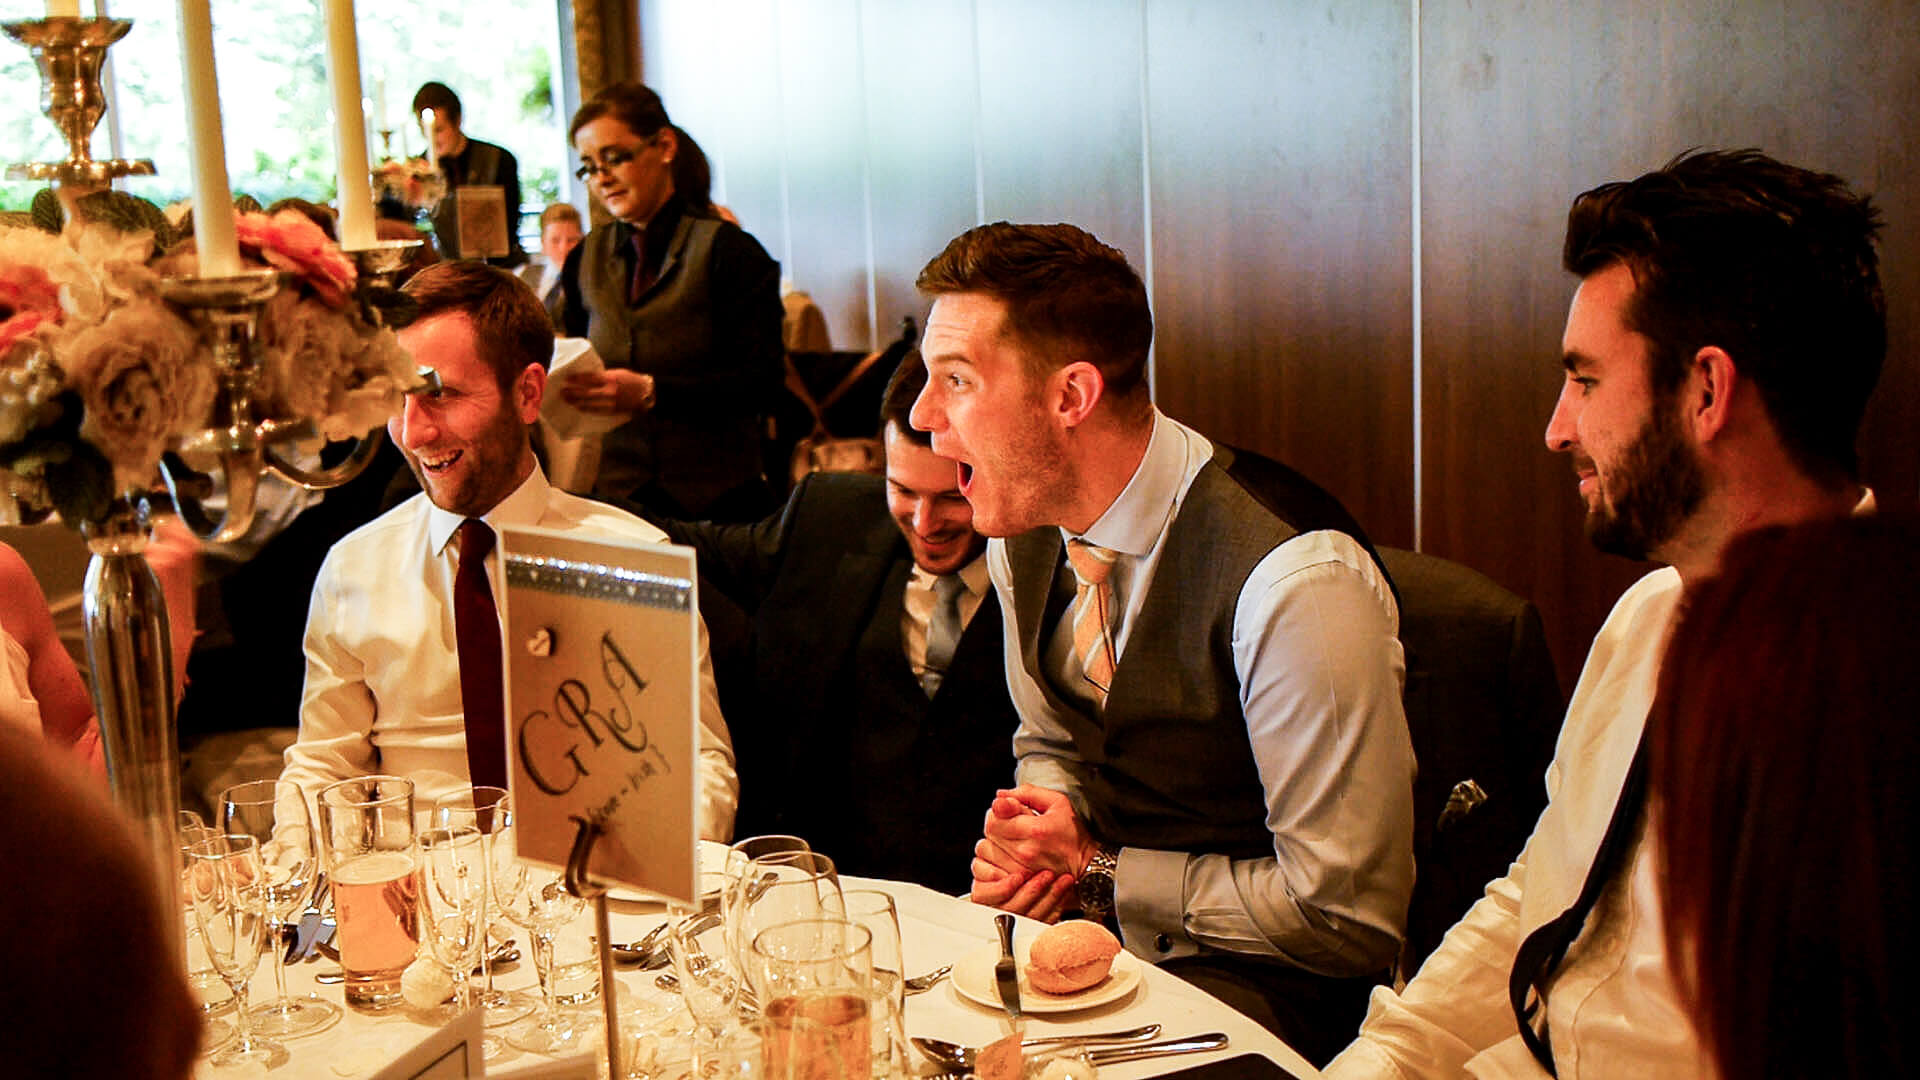 Manchester wedding magician entertaining guests with mind reading and hypnosis with entertainment during wedding breakfast